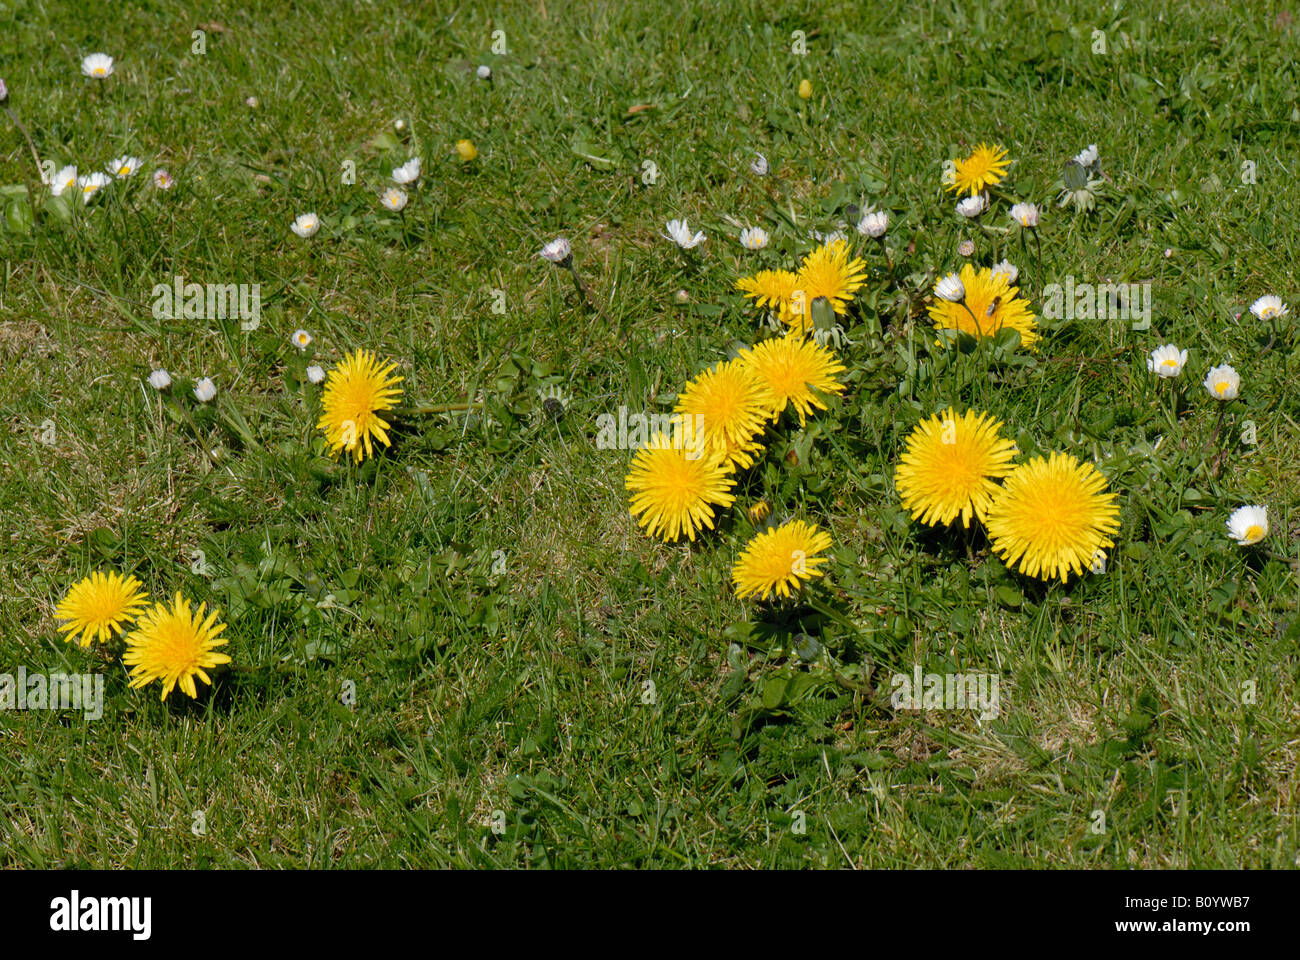 Flowering daisies and dandelions in a garden lawn - Stock Image